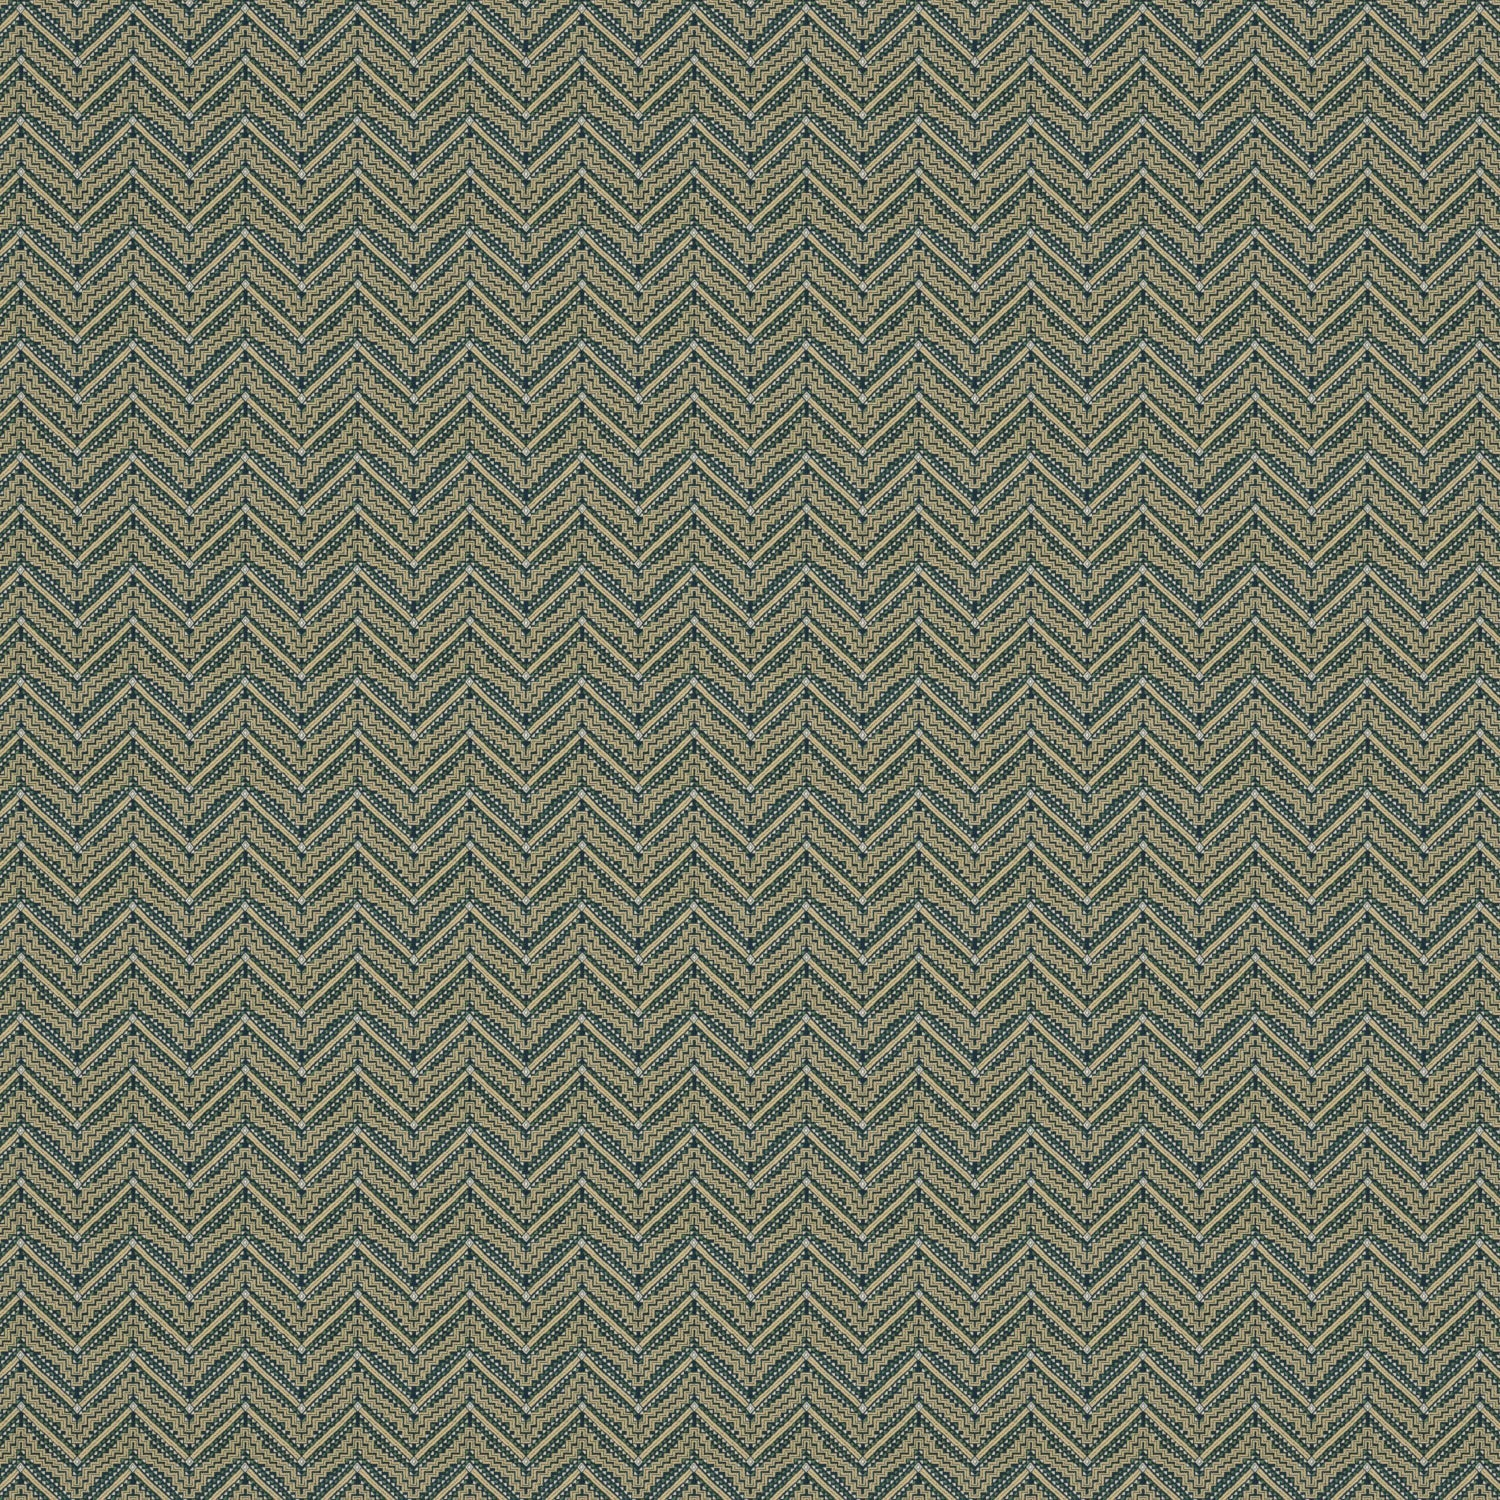 Fabric swatch of a dark grey coloured zig zag geometric weave fabric suitable for curtains and upholstery